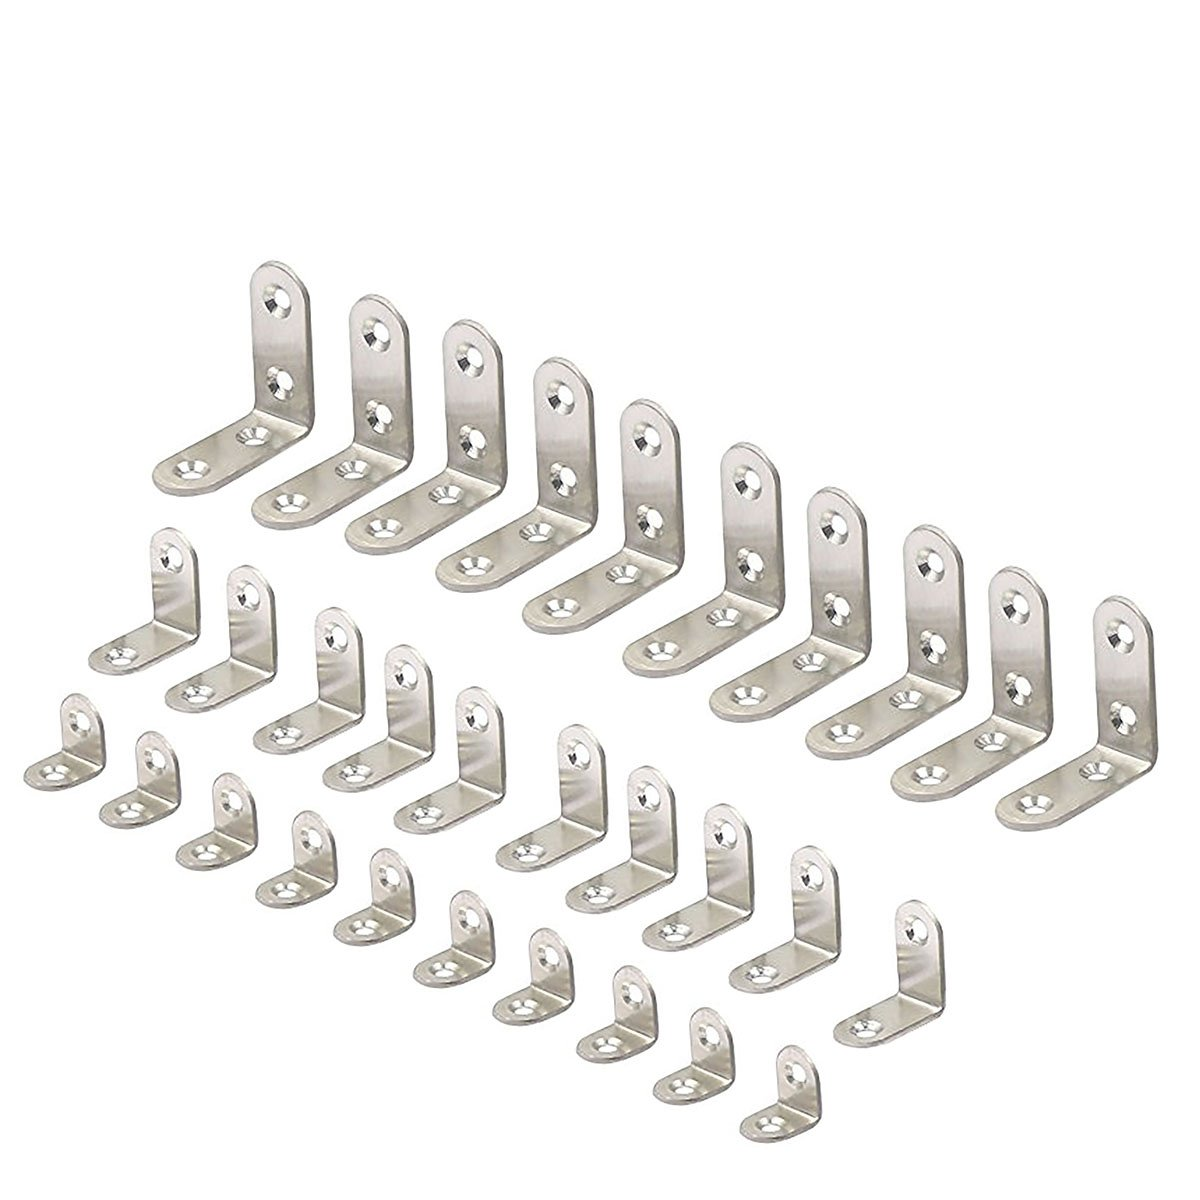 2 Size 30 Pieces Corner Brackets 90 Degree Angle Bracket Corner Braces Stainless Steel L Bracket with Screws 20 x 20 mm 3030mm 40 x 40mm Each Size 10 Pieces